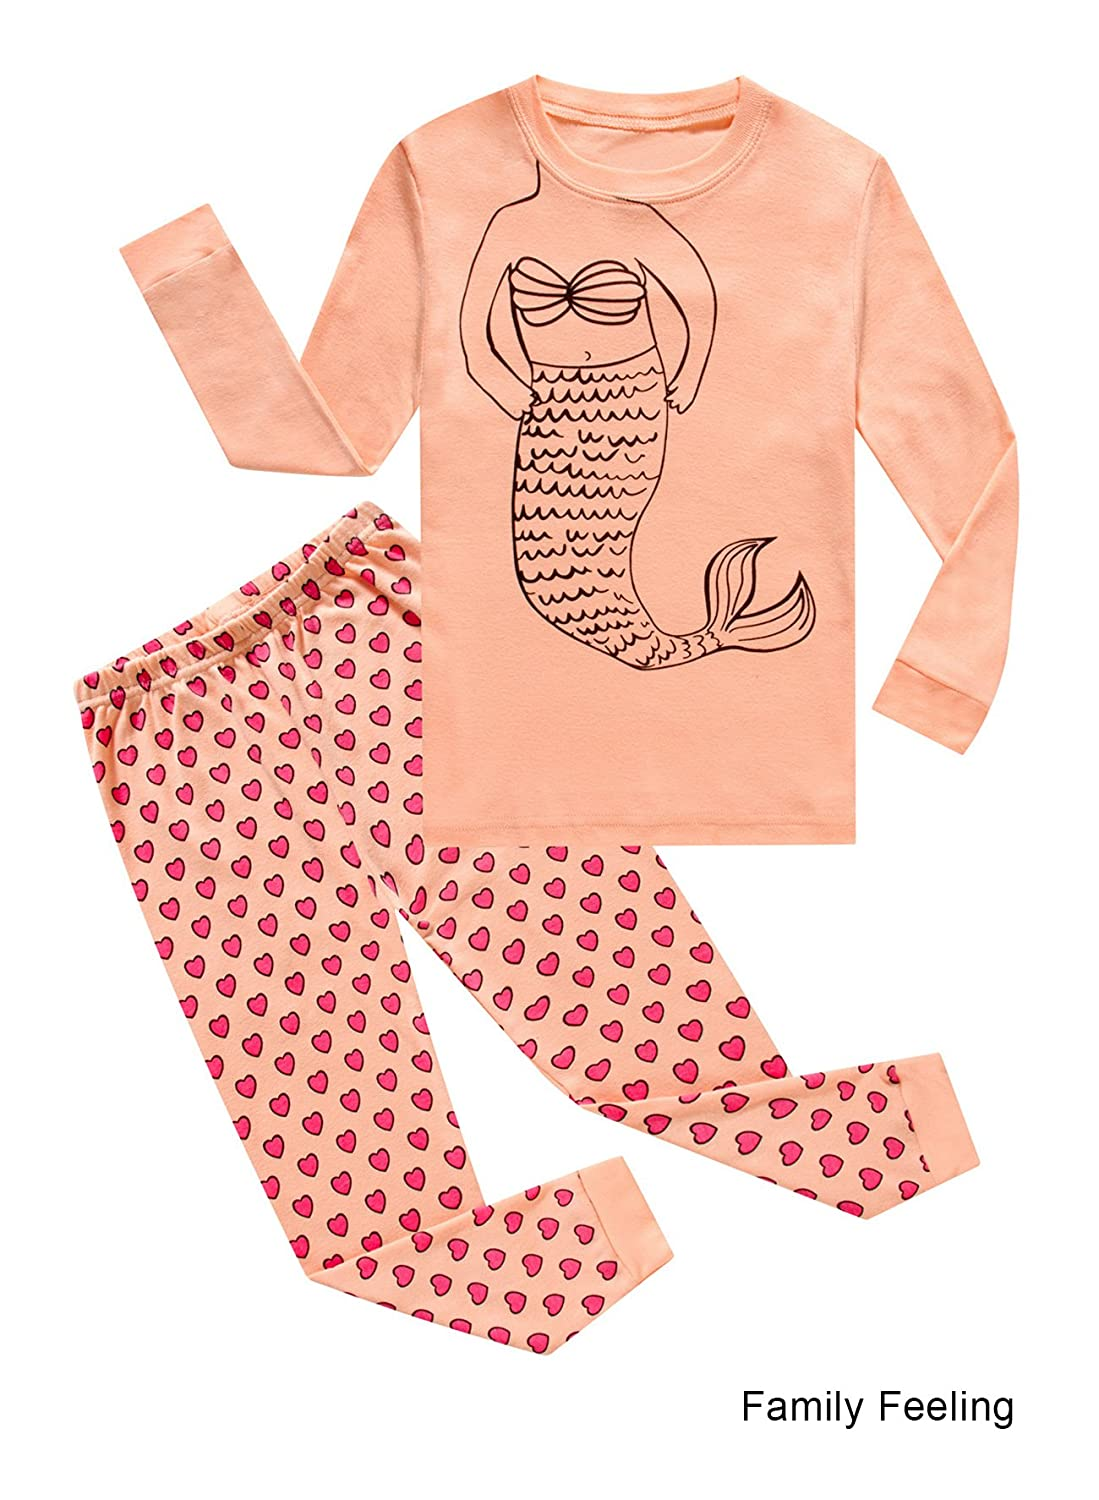 Family Feeling Pajamas for Girls Long Sleeve Pjs 100% Cotton Kids Clothes